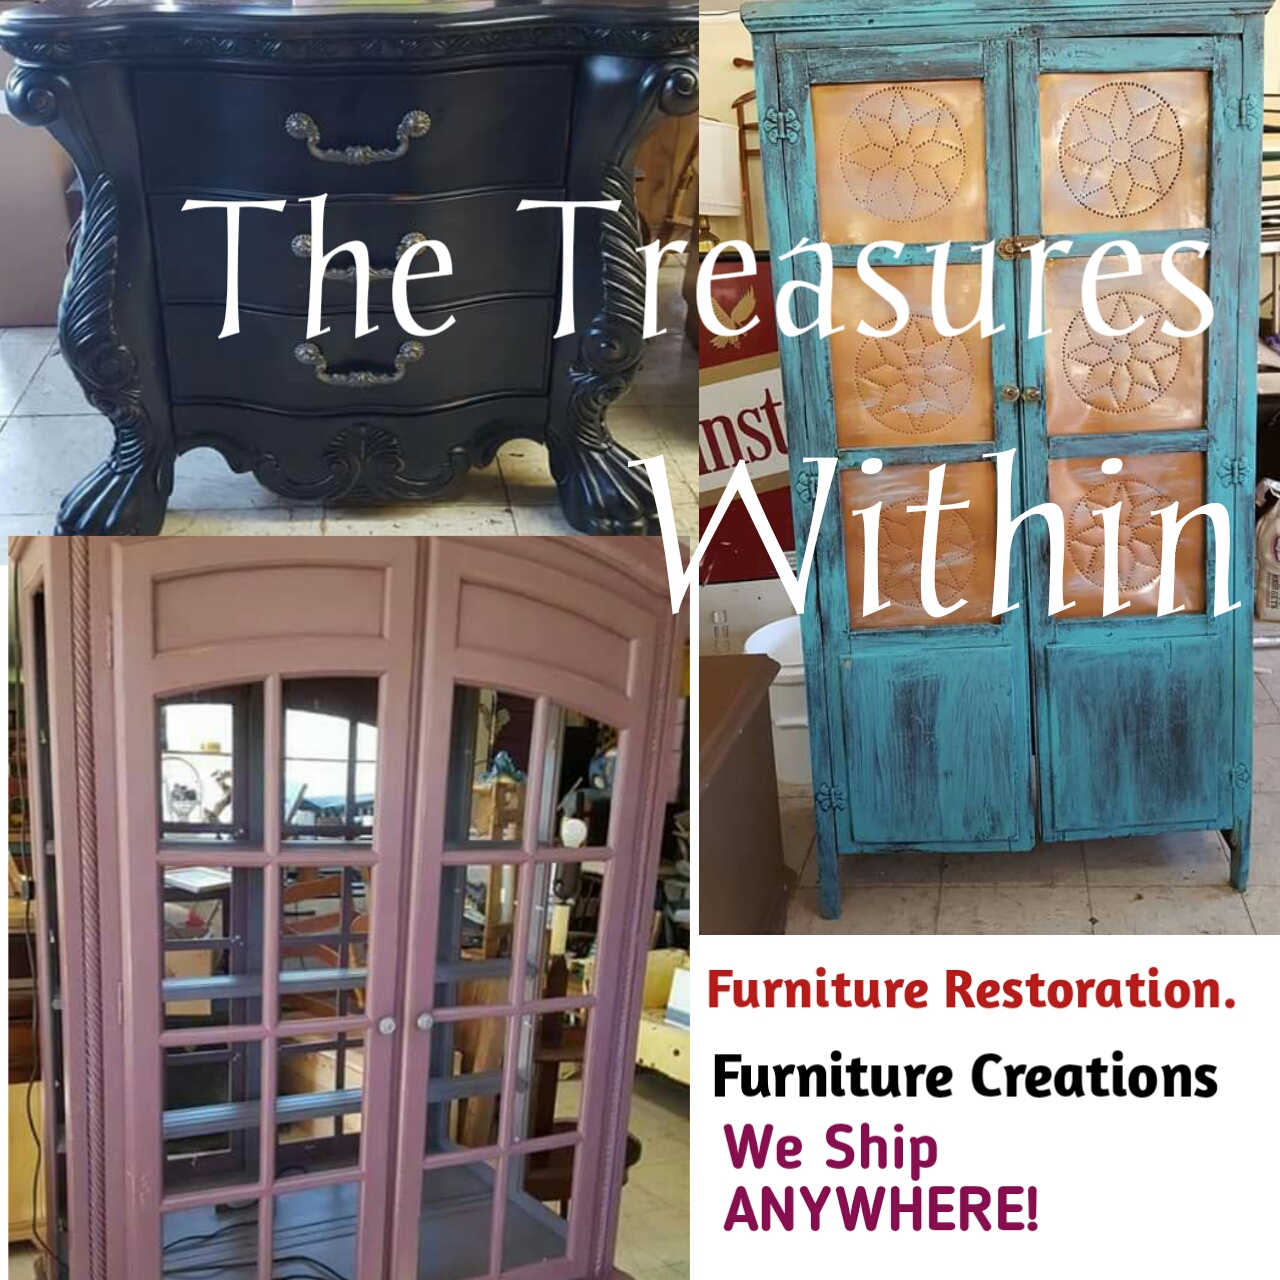 Visit The Treasures Within